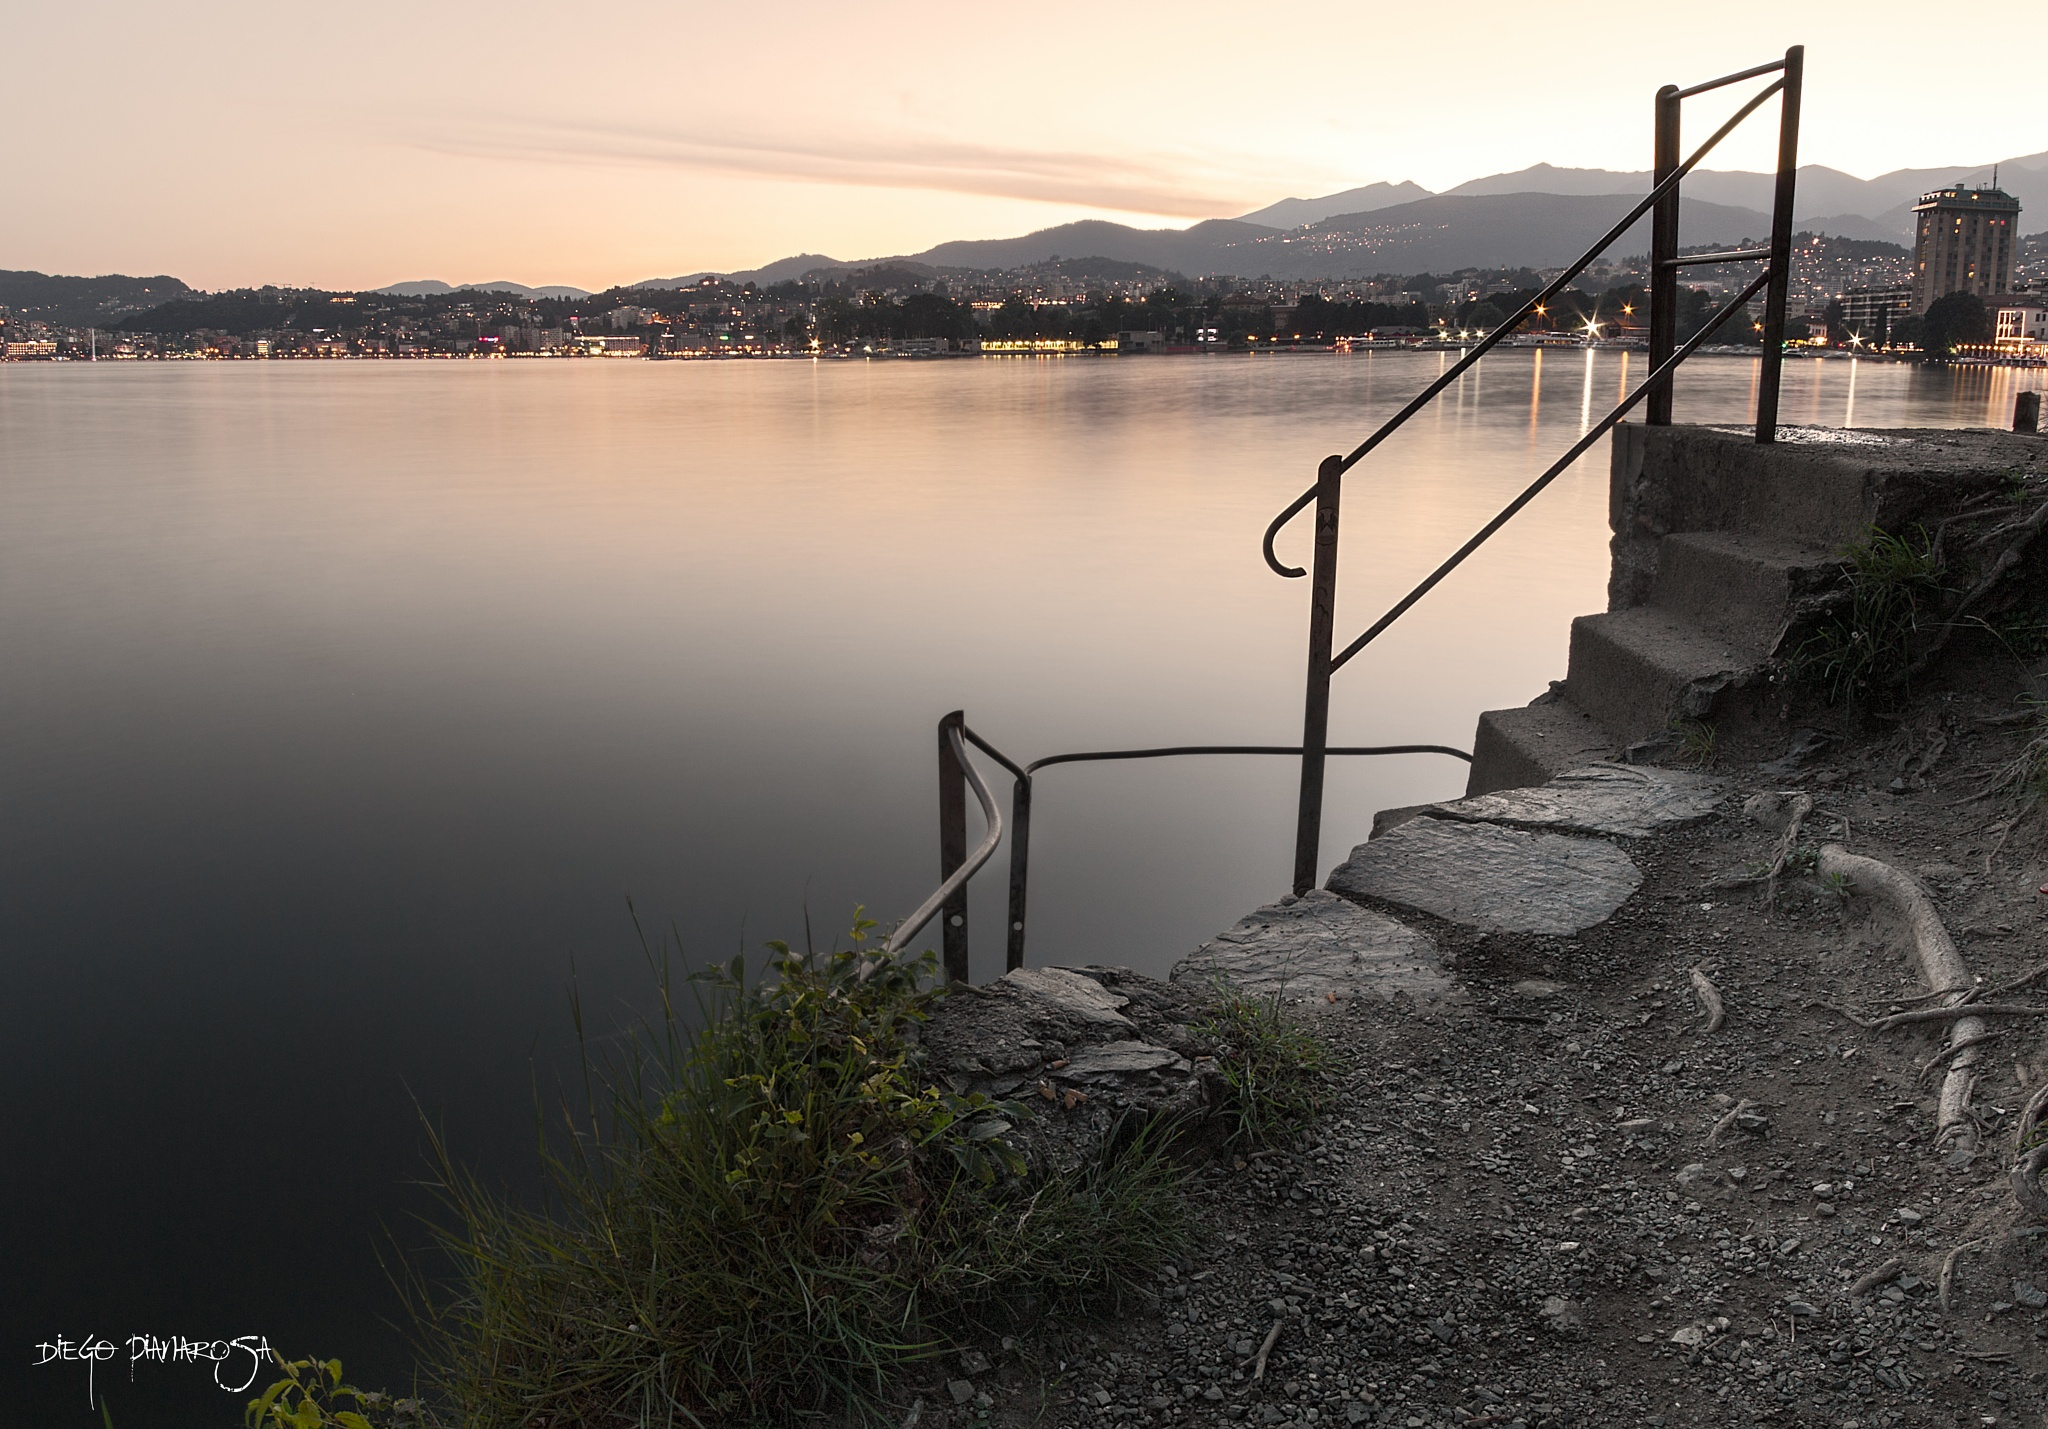 Down to the lake by Diego Pianarosa